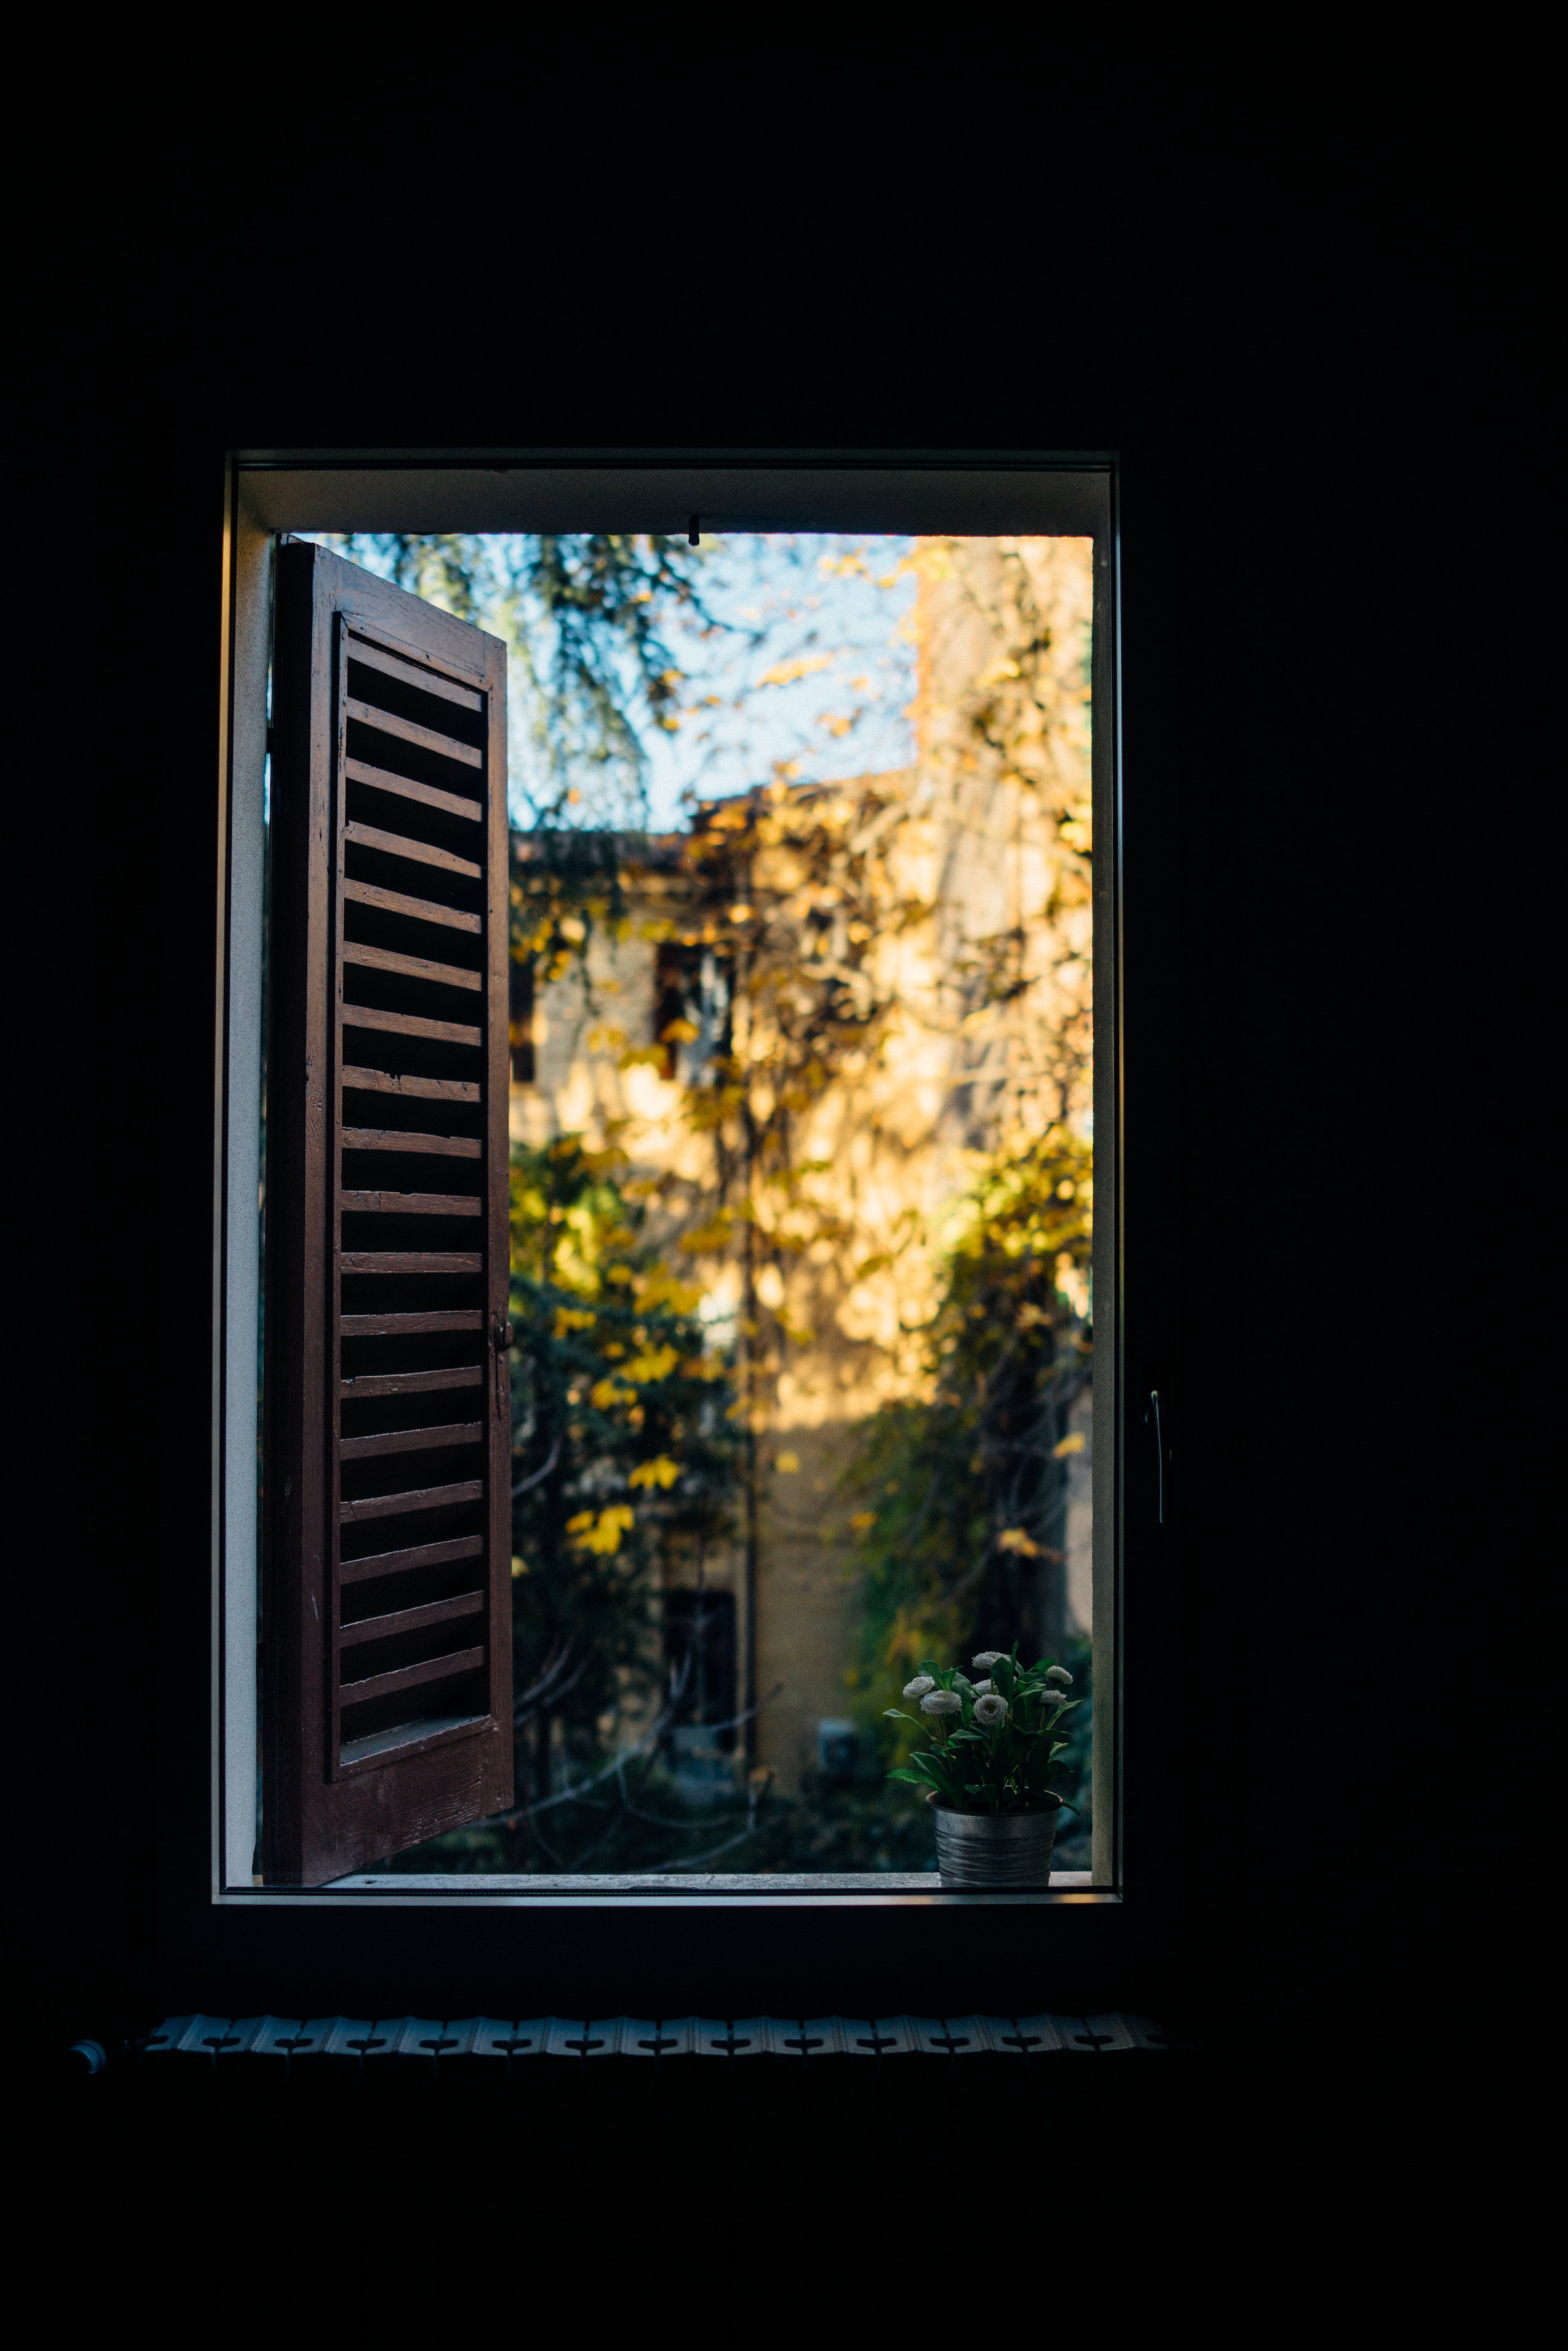 Looking out the window from apartment on Via de' Coltelli